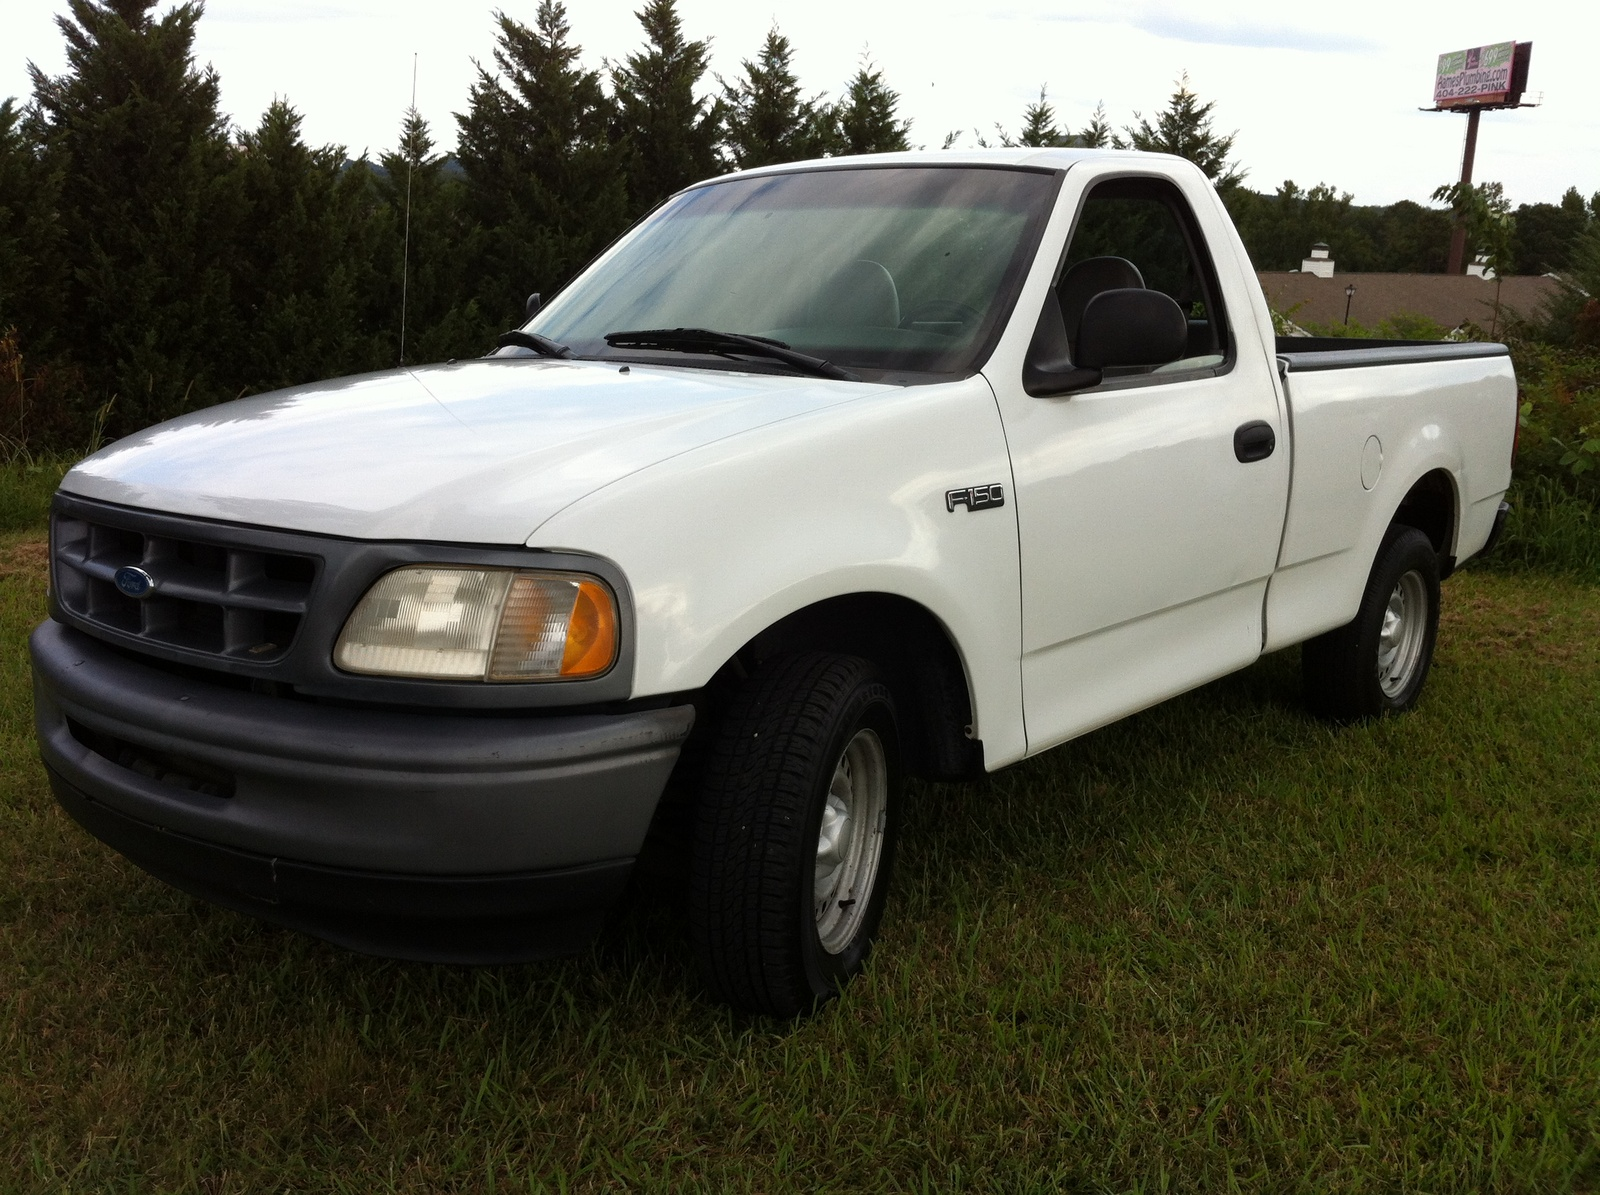 2003 Ford F-150 - Pictures